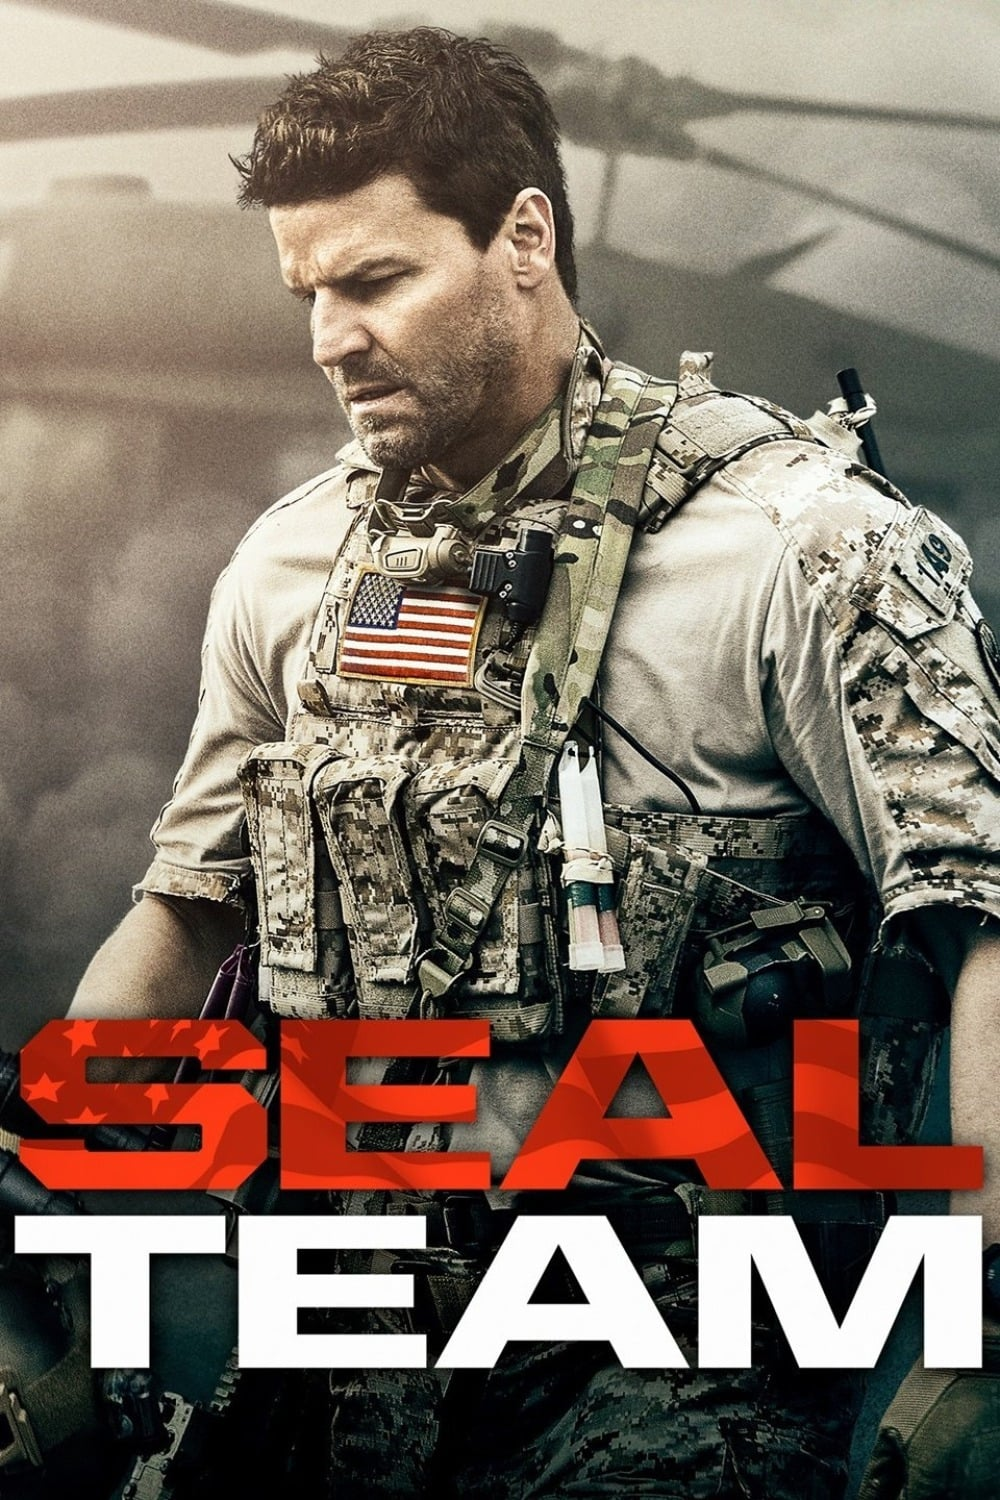 image for SEAL Team